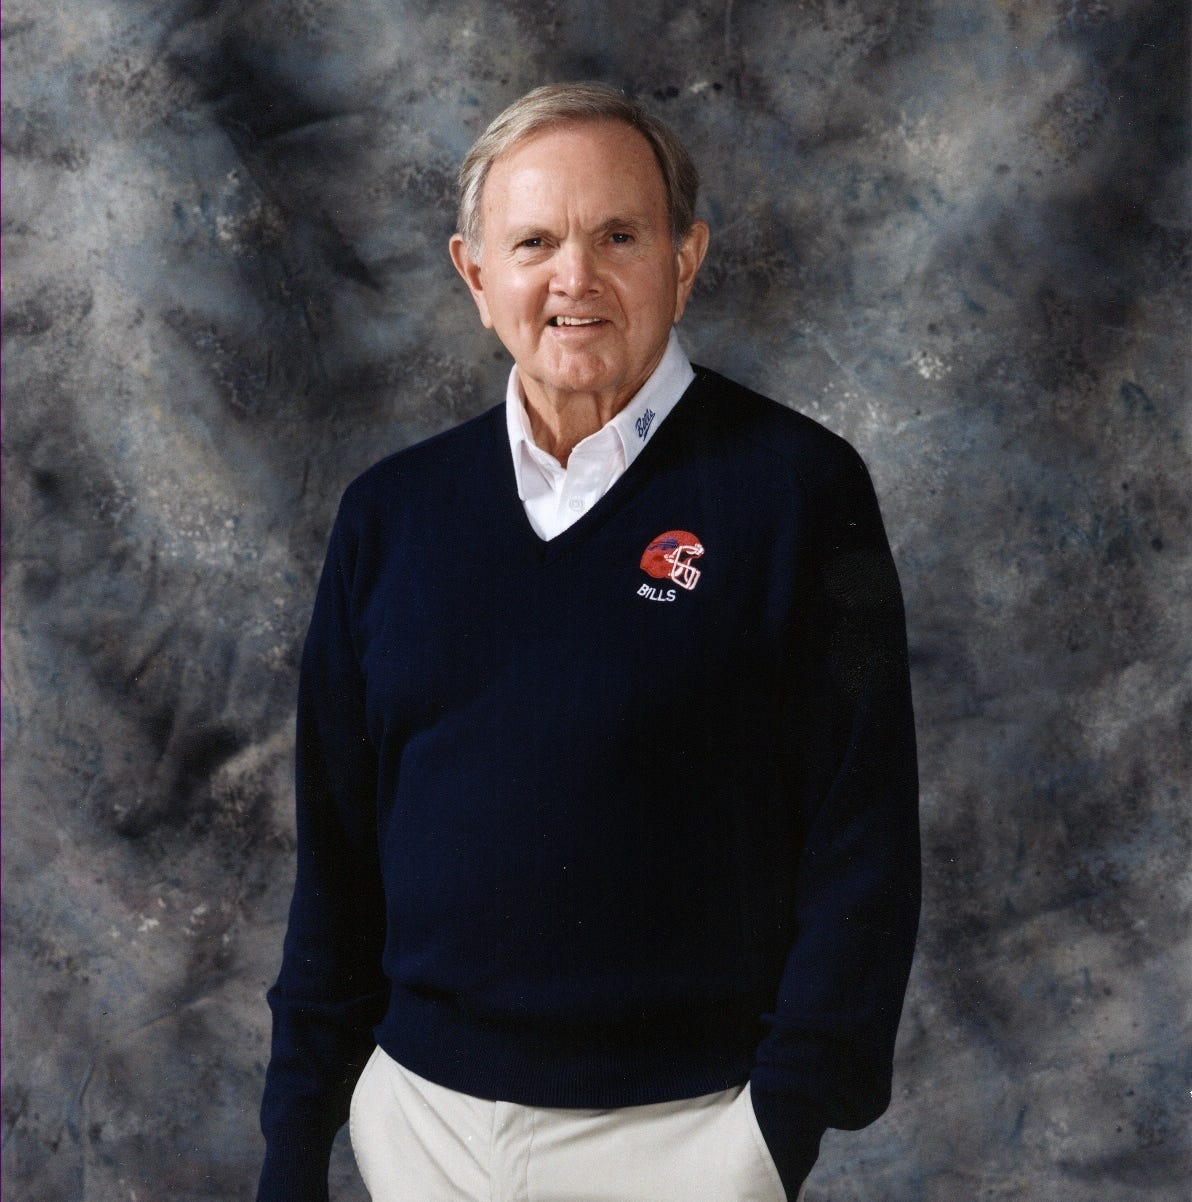 Ralph Wilson Foundation gives $200 million for parks, trails in Buffalo and Detroit